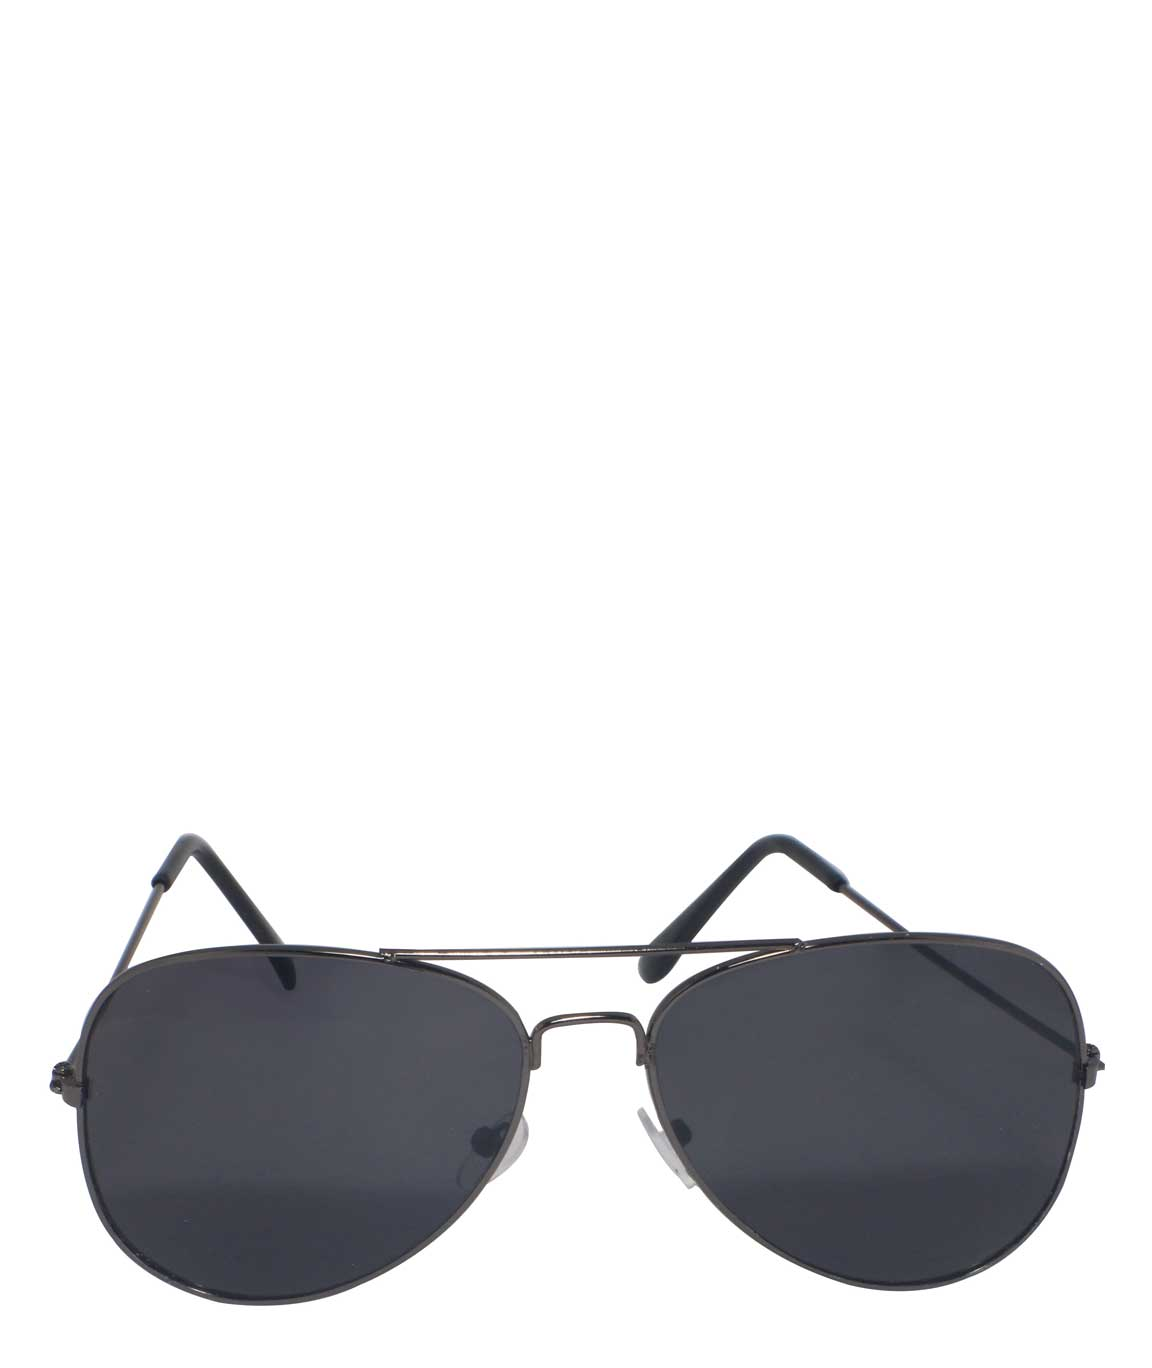 FLASH BLACK AVIATOR